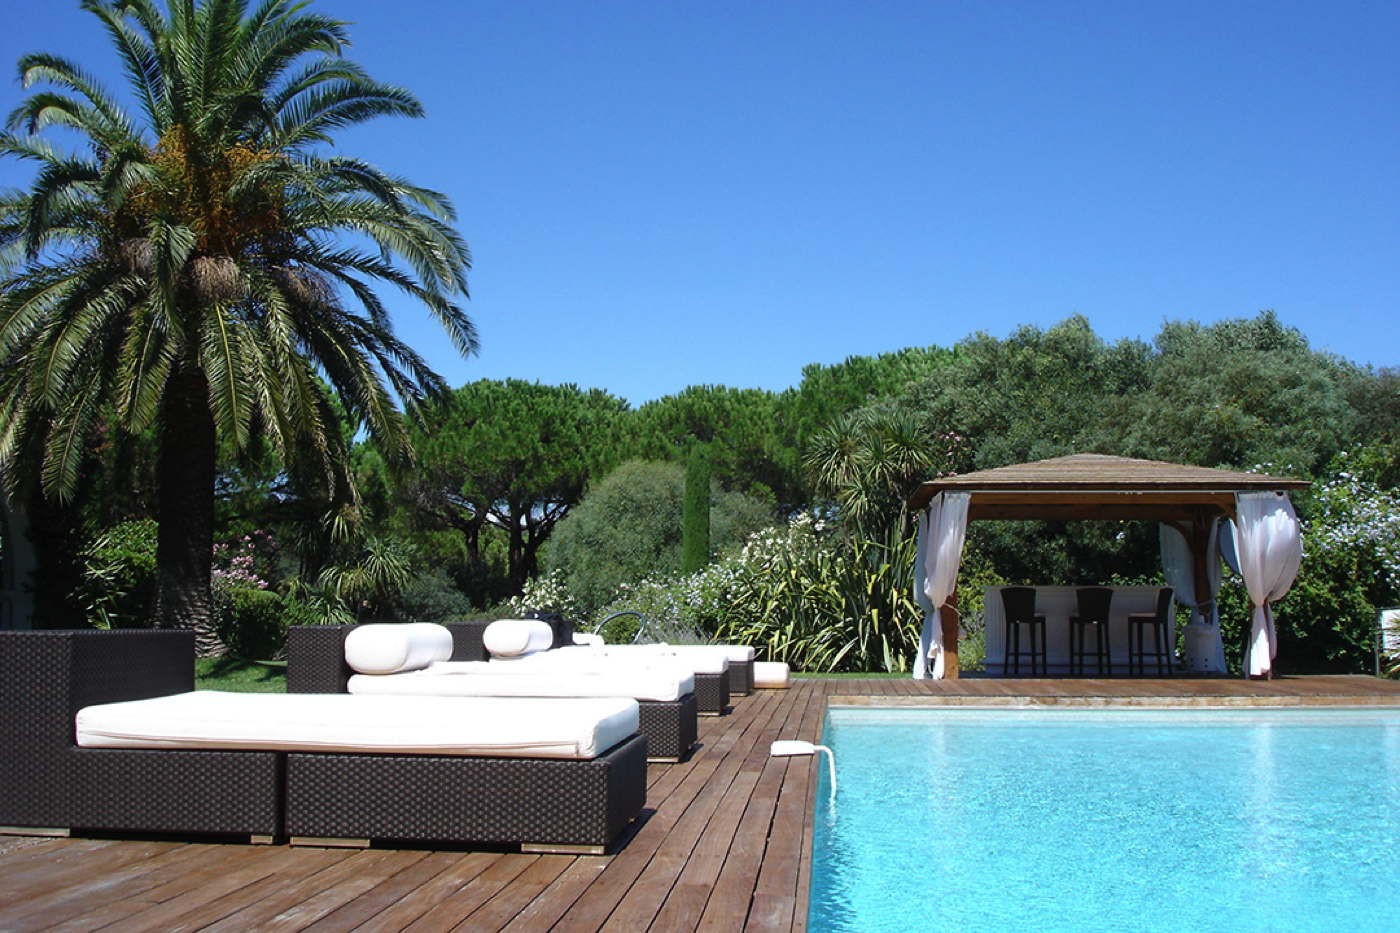 Luxury Holiday Rental Villa Seaview With Pool France Ramatuelle